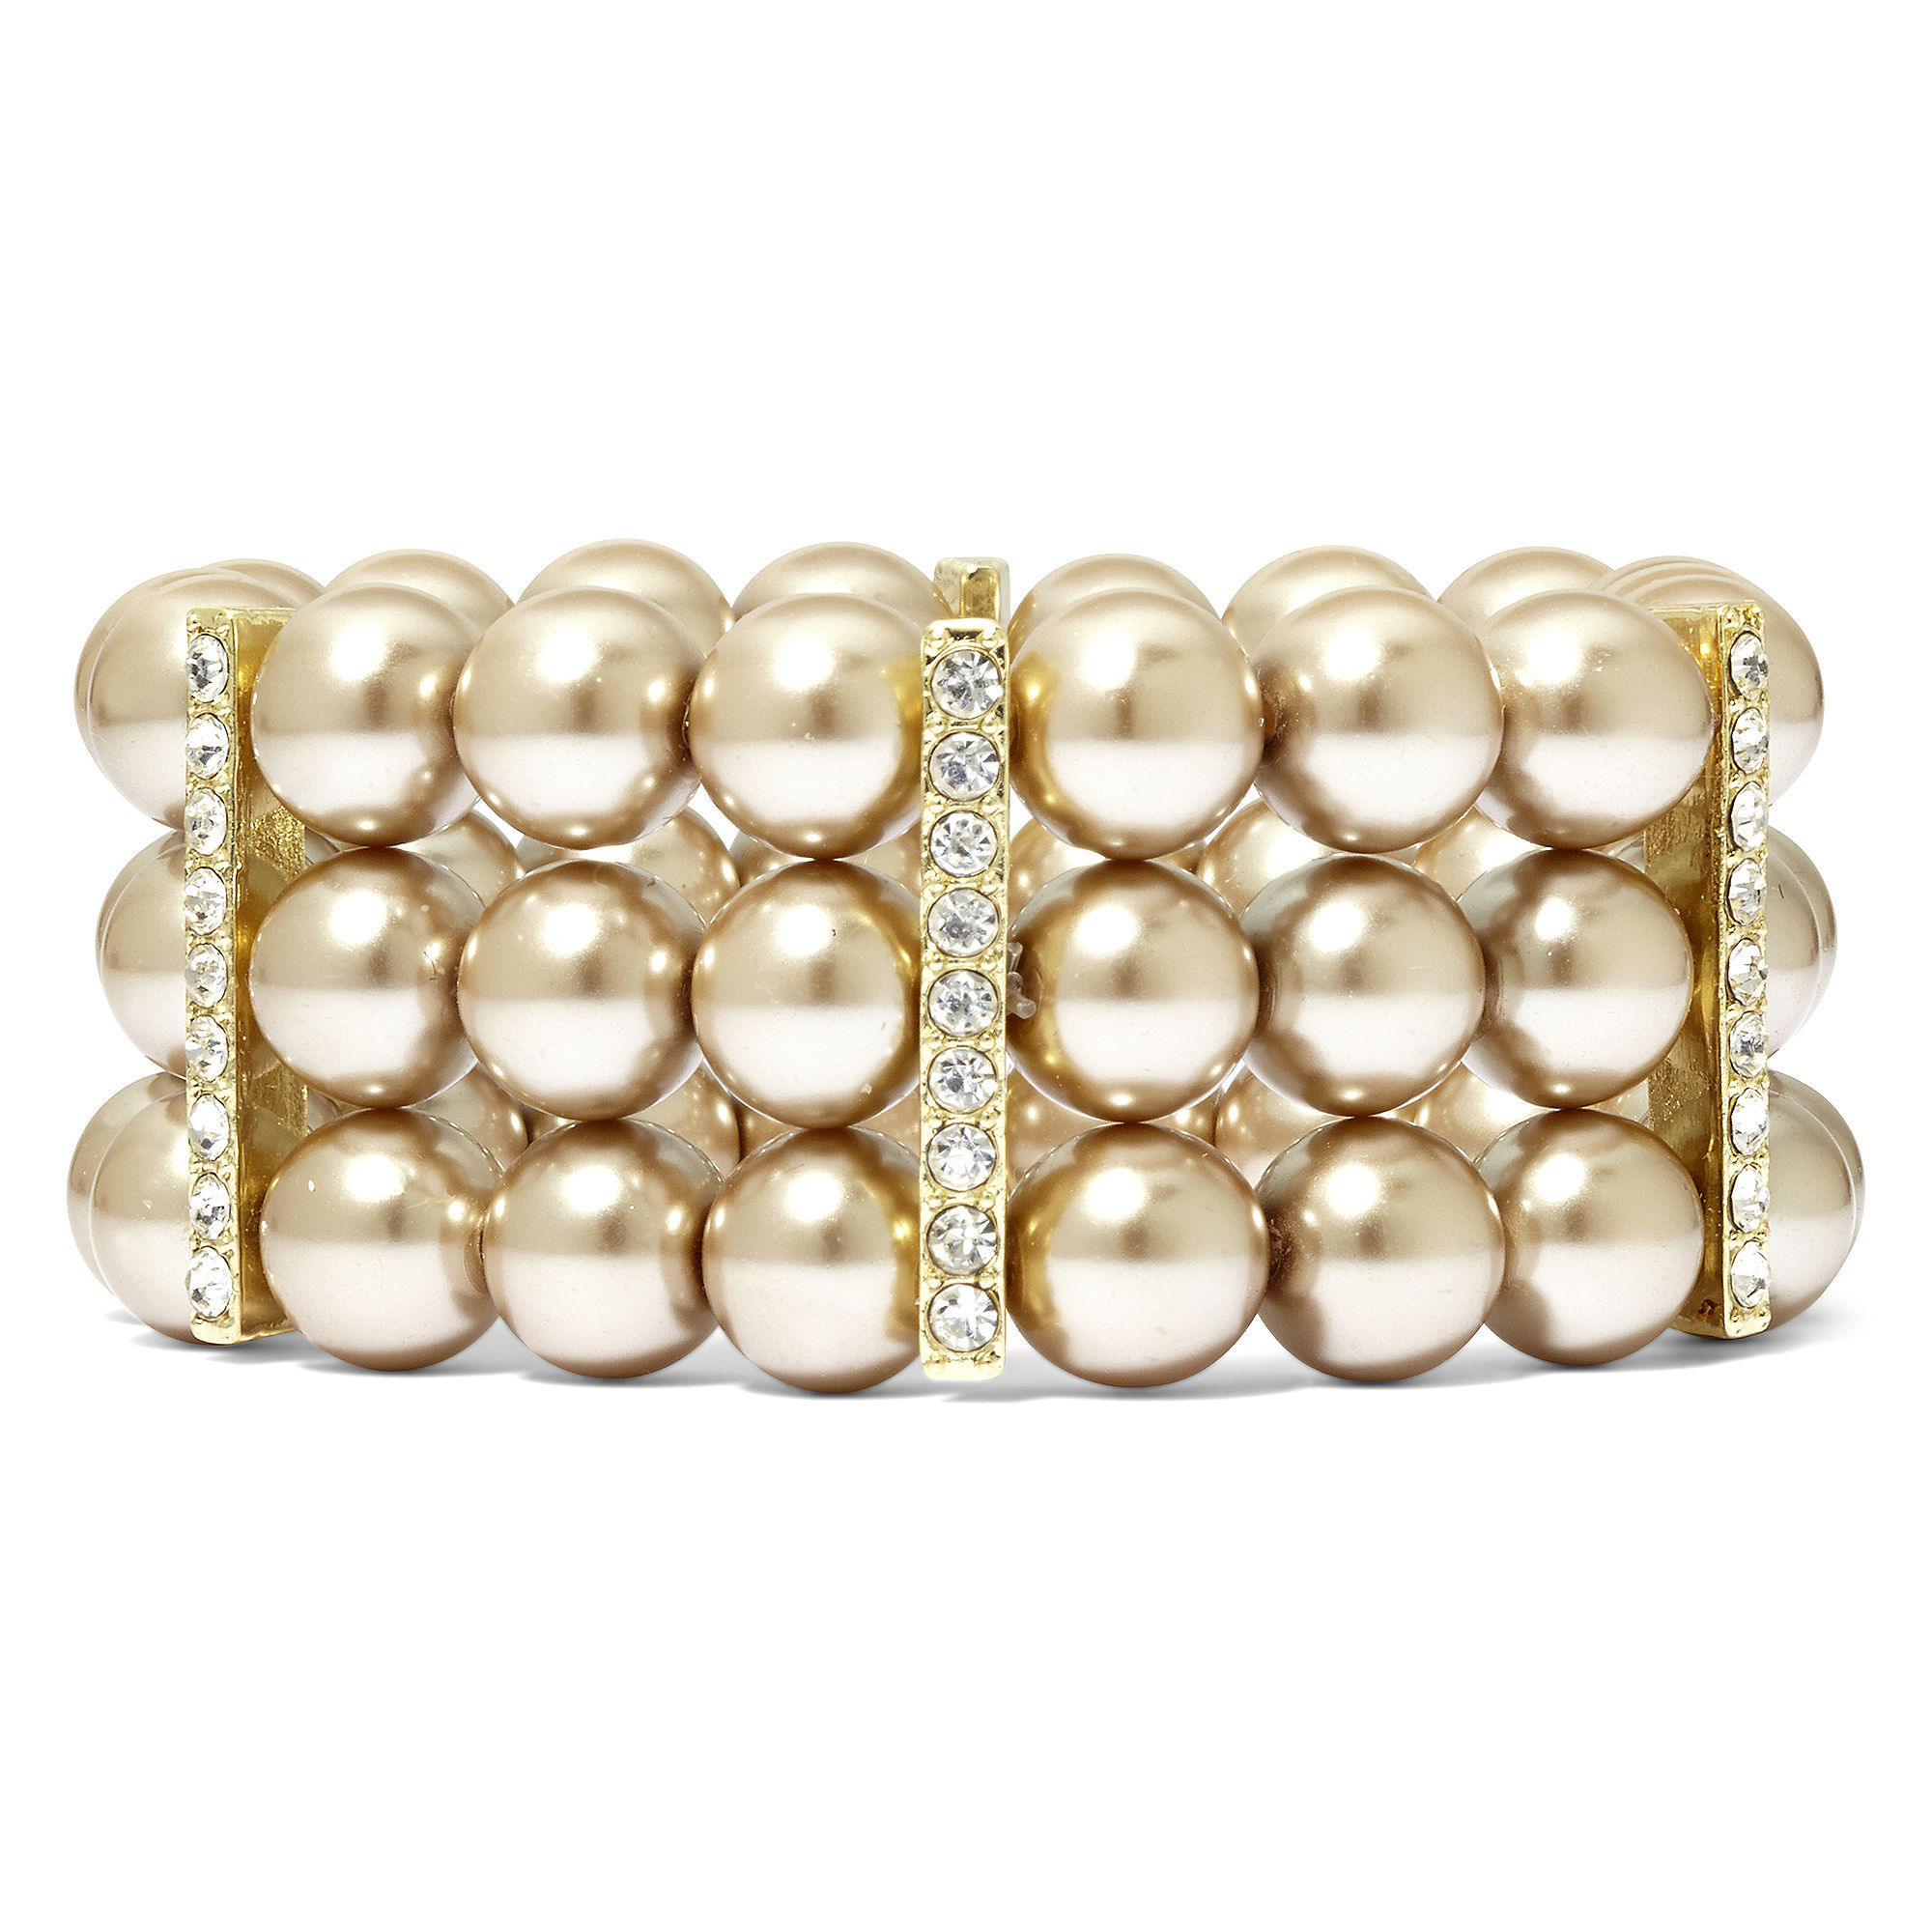 Vieste Silver-Tone Pearlized Glass Bead 3-Row Stretch Bracelet